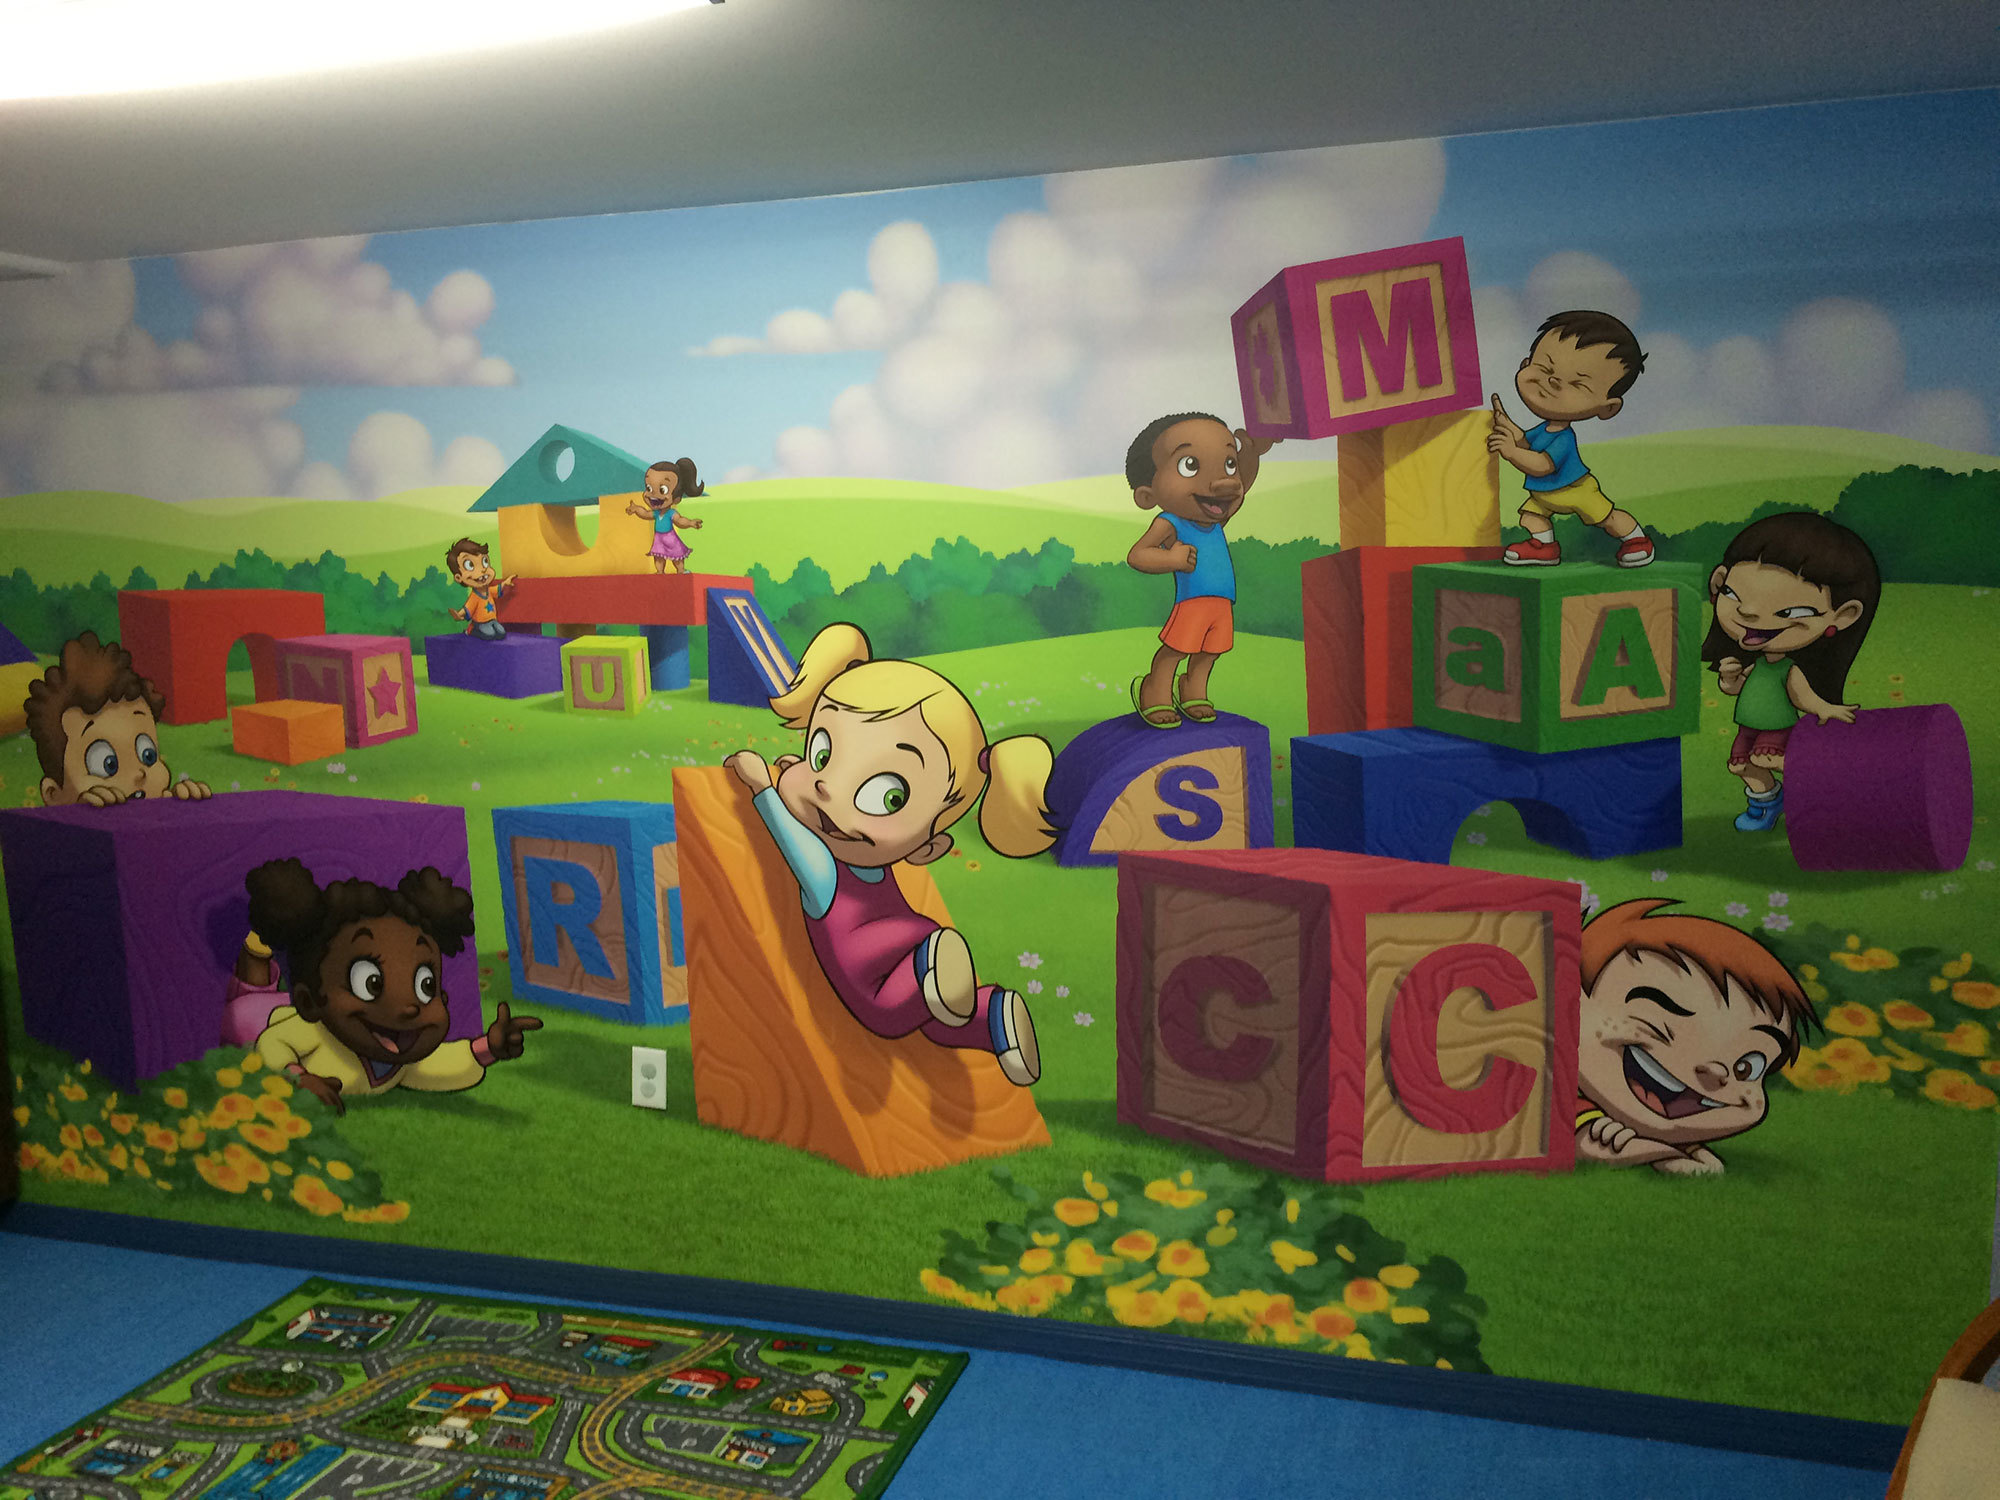 Baby Builders and Toddlers with Big Blocks Themed Wall Covering at Relevant Church Tampa